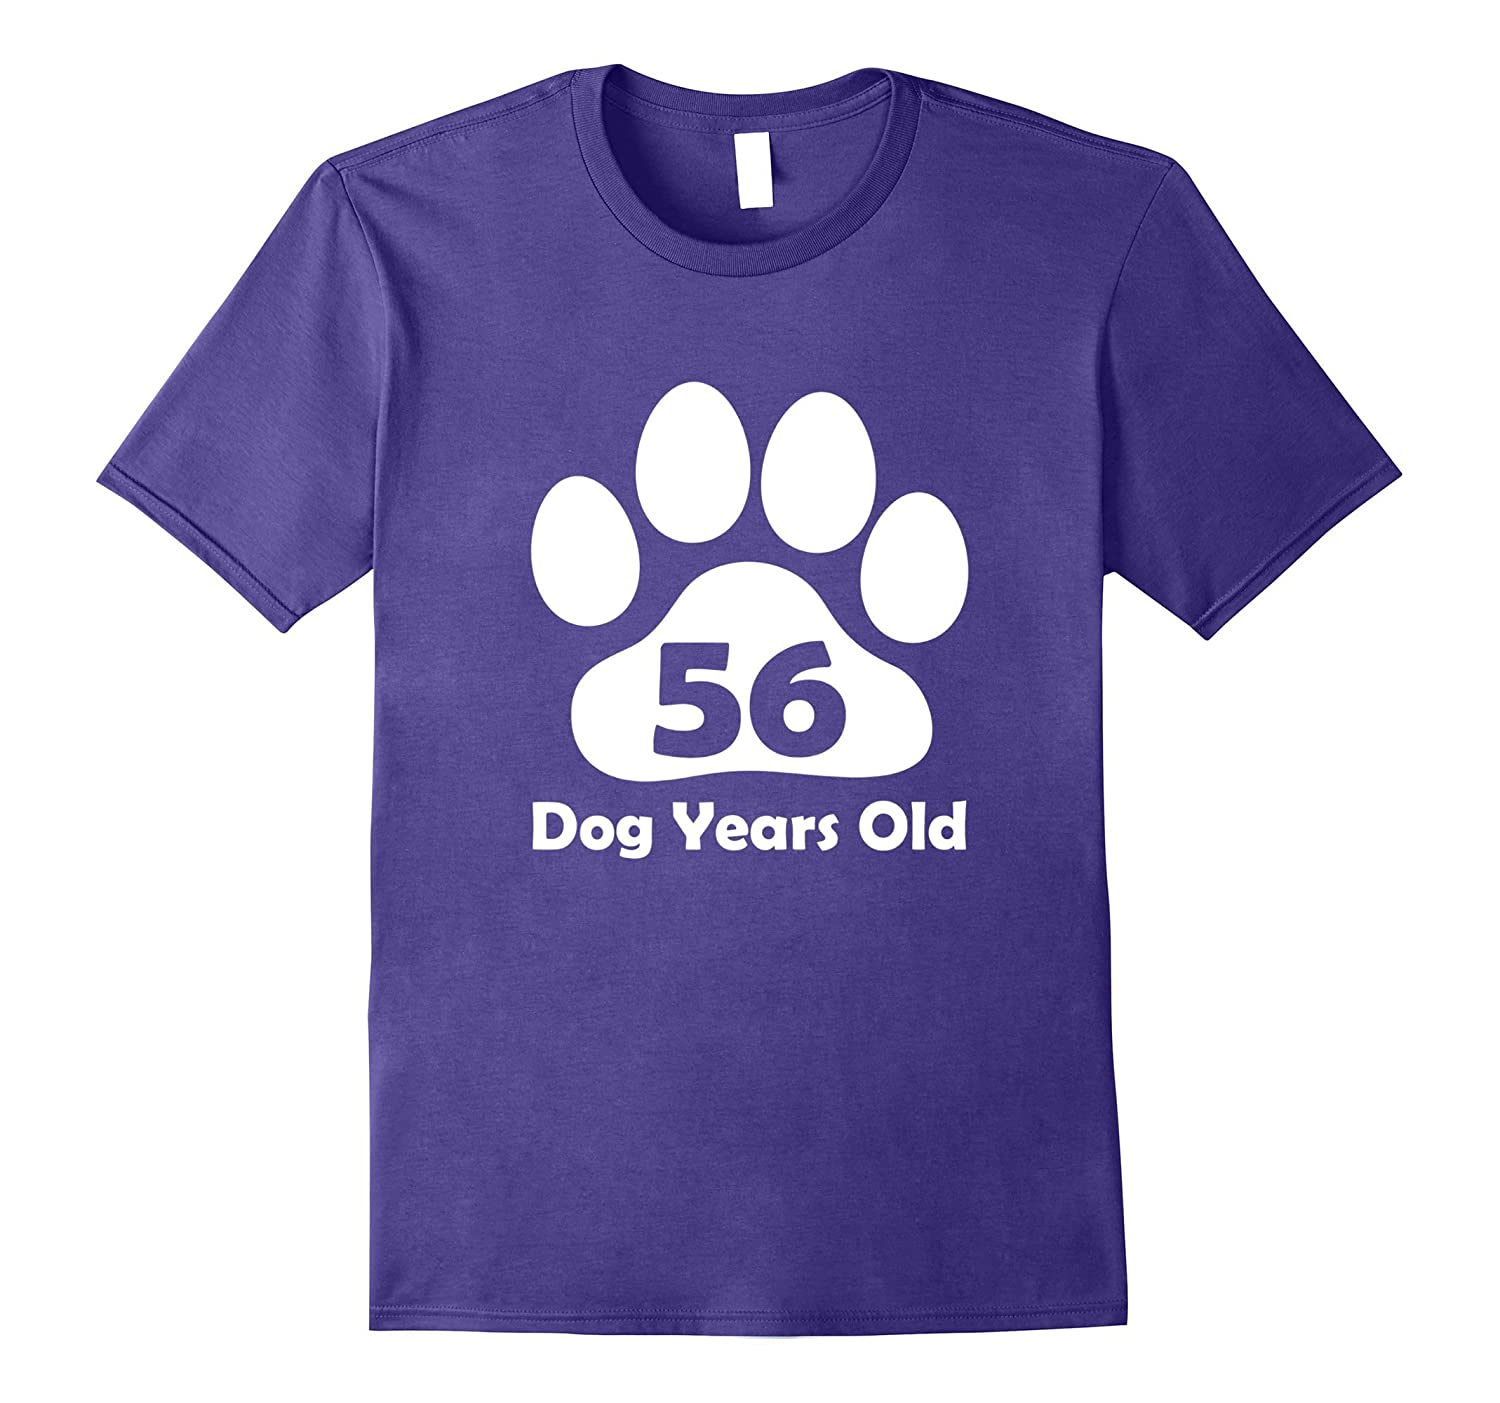 56 Dog Years Old T-Shirt Funny 8th Birthday Gift Puppy Lover-Vaci